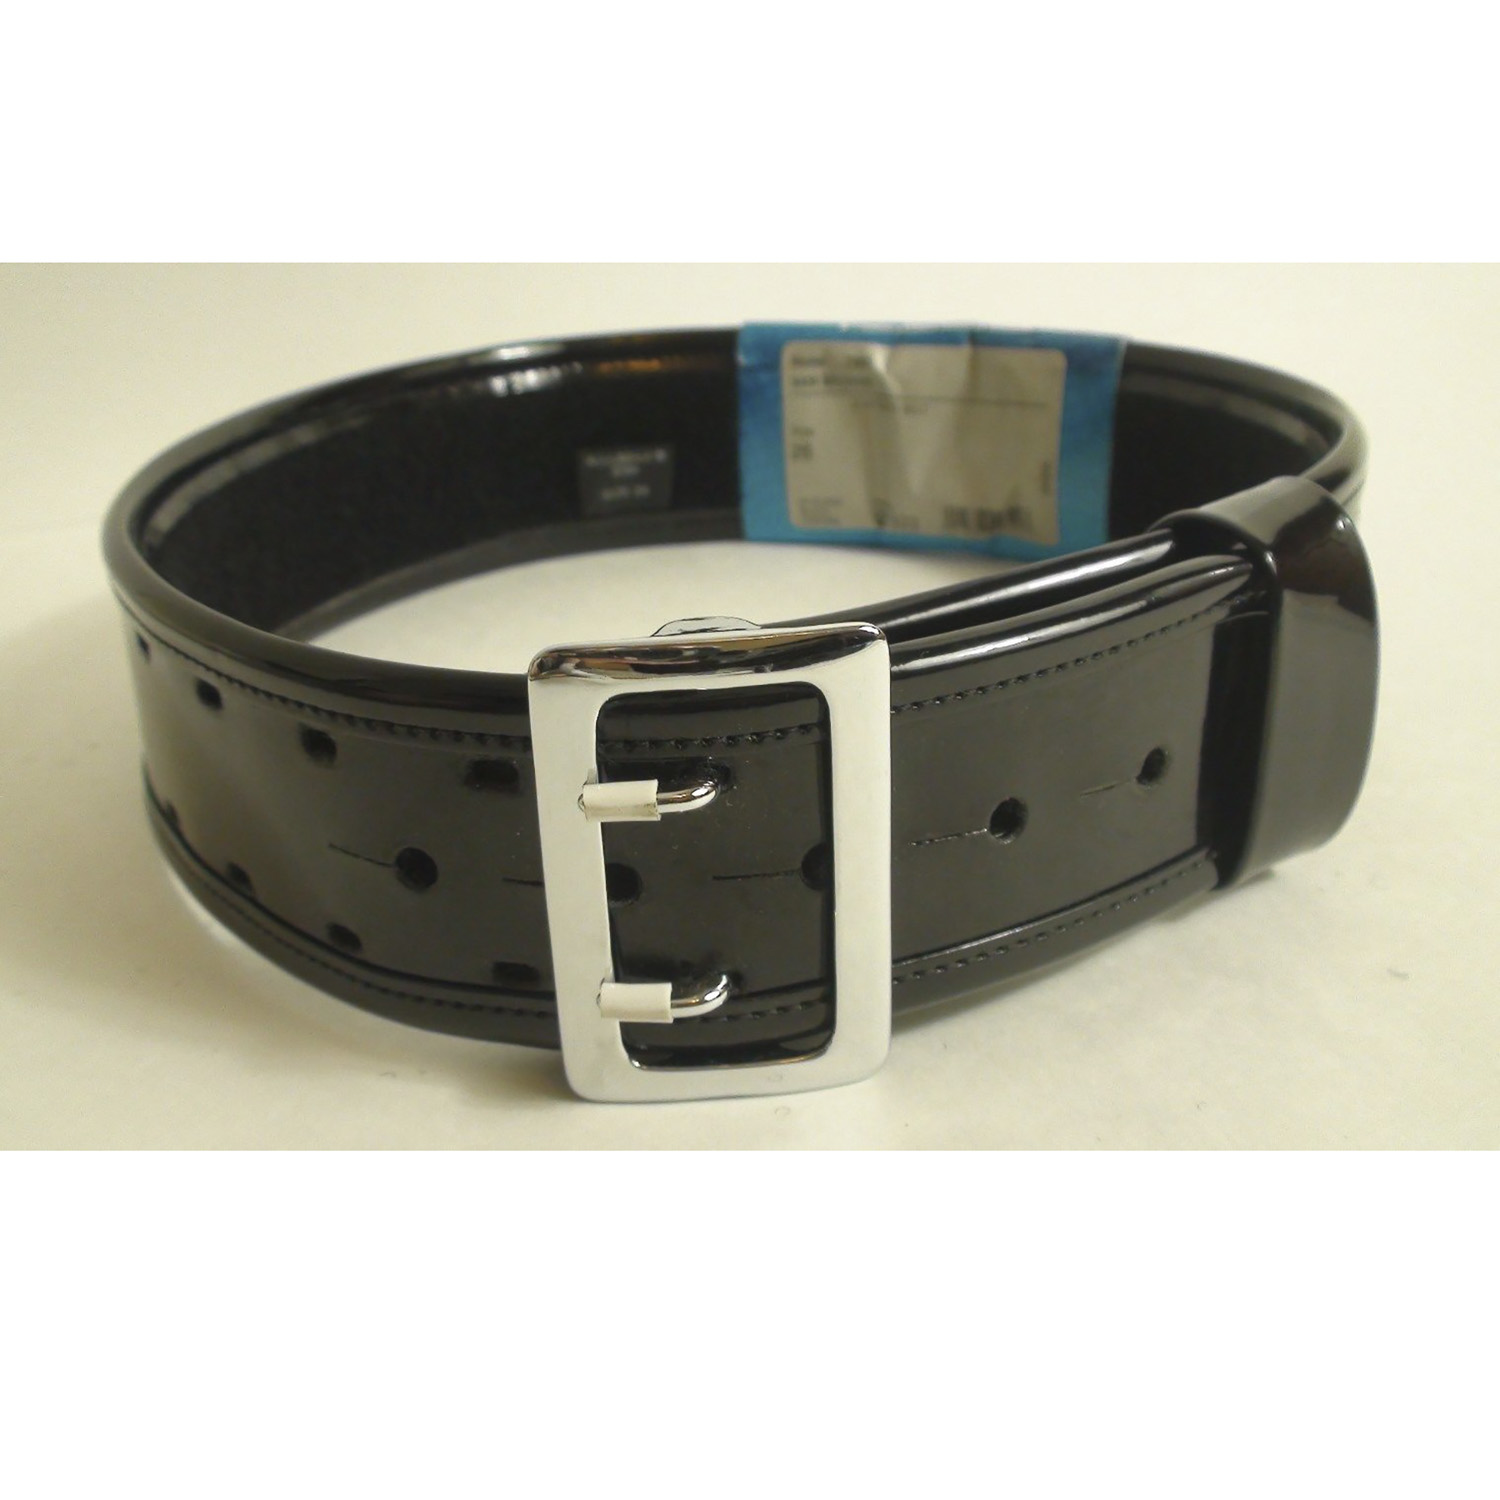 Bianchi Accumold Elite Equipment Belt ZP063